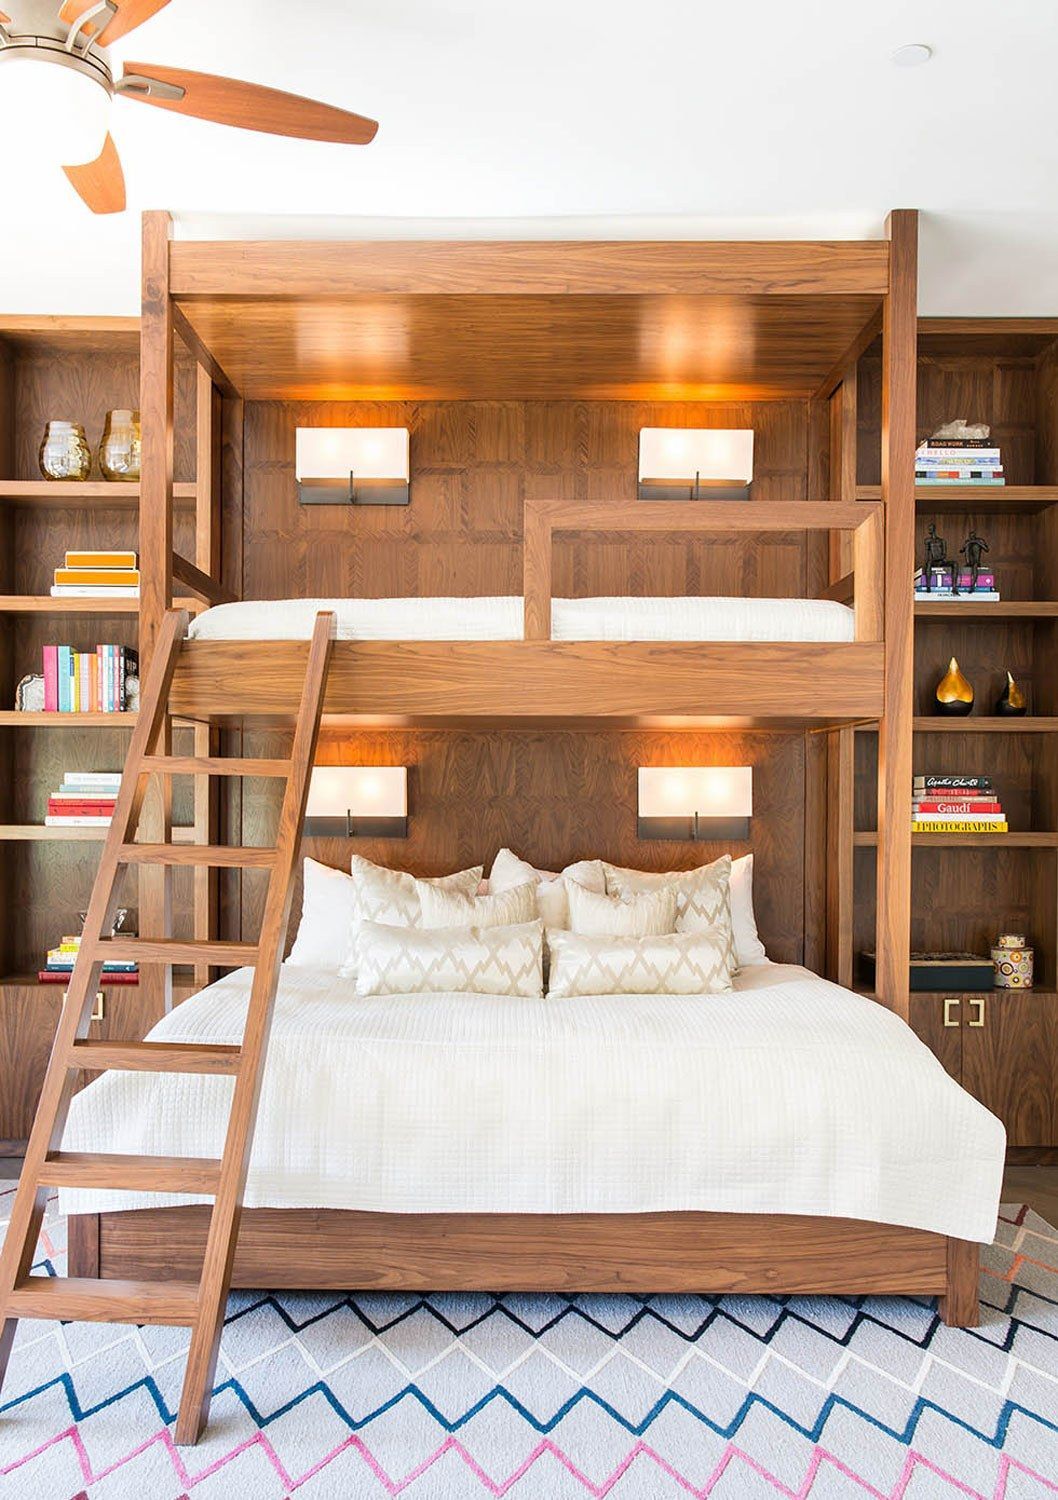 Why Adult Bunk Beds Are A Design Do Home Hotel Amp Coffee